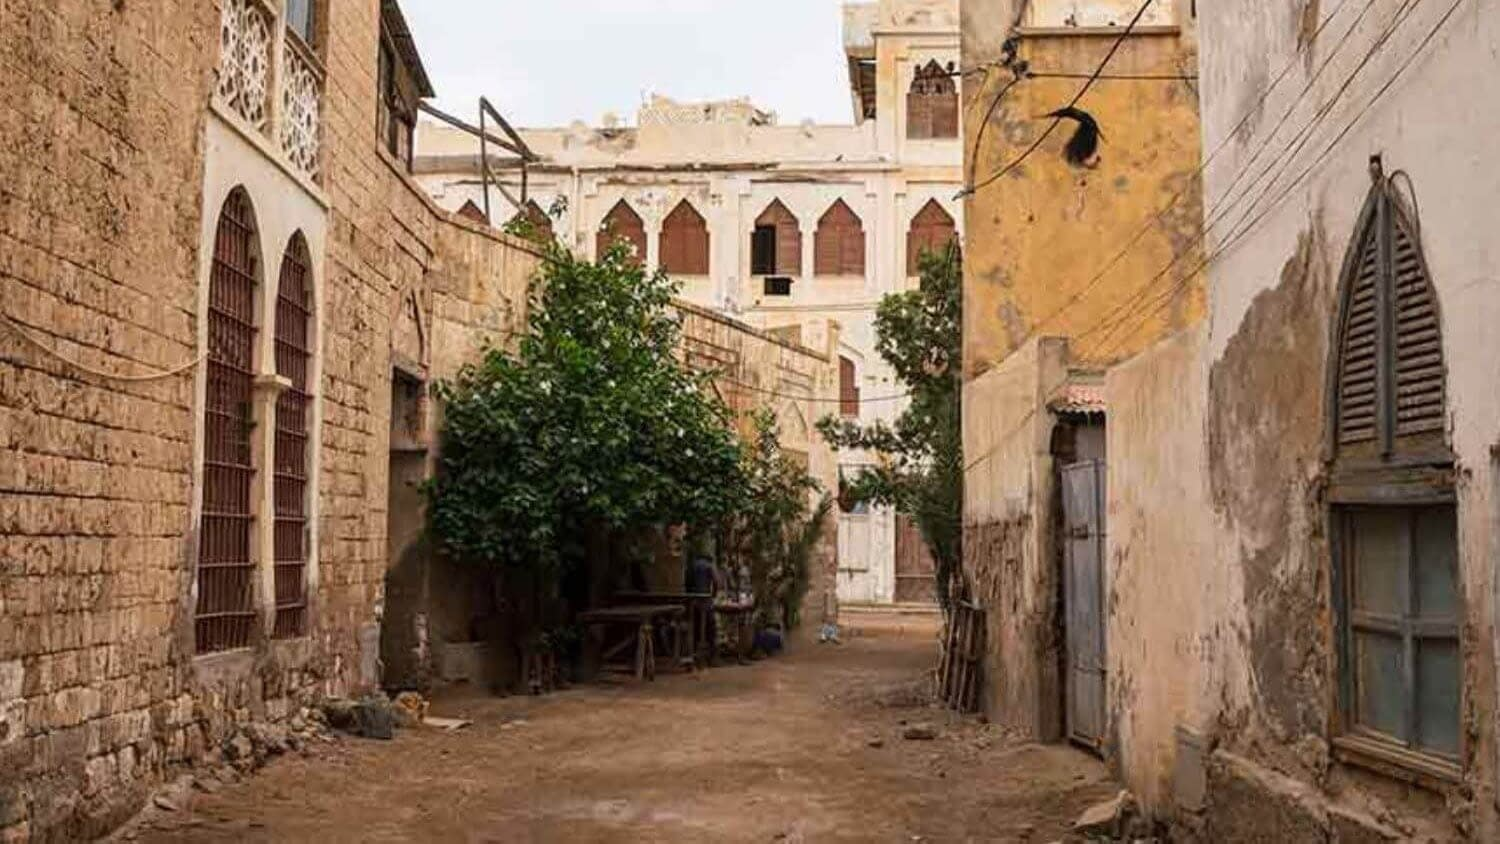 Massawa old town - Things to see and do in Eritrea